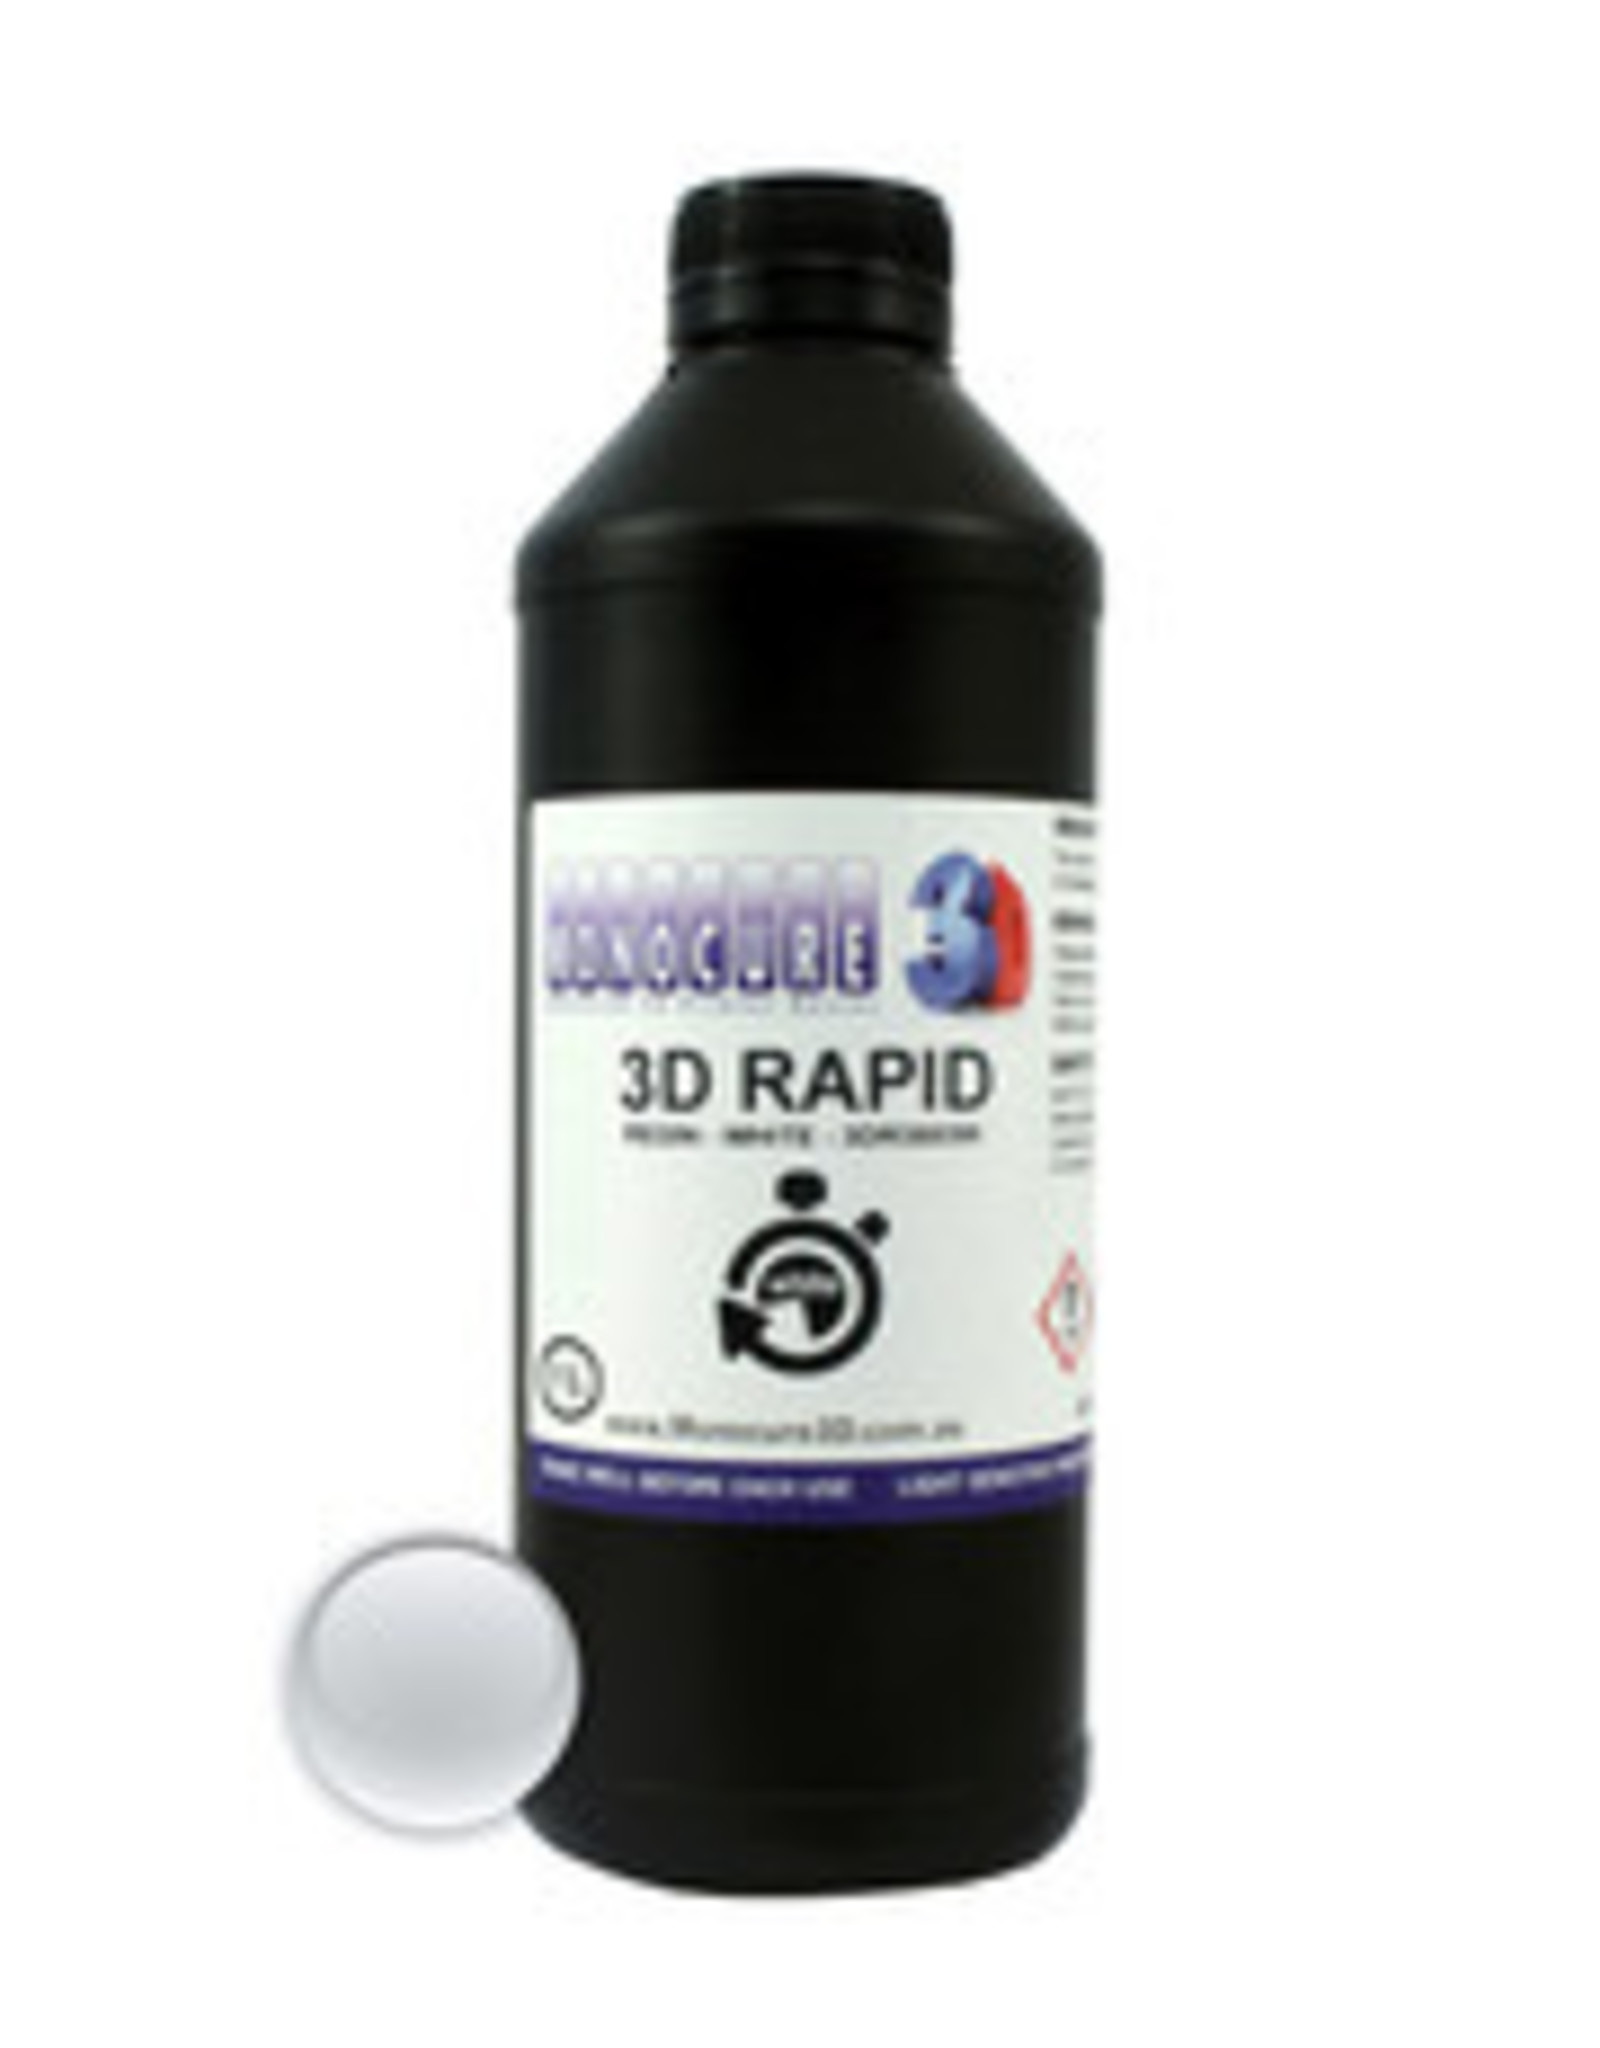 Monocure3D Monocure 3D Rapid Resin Wit